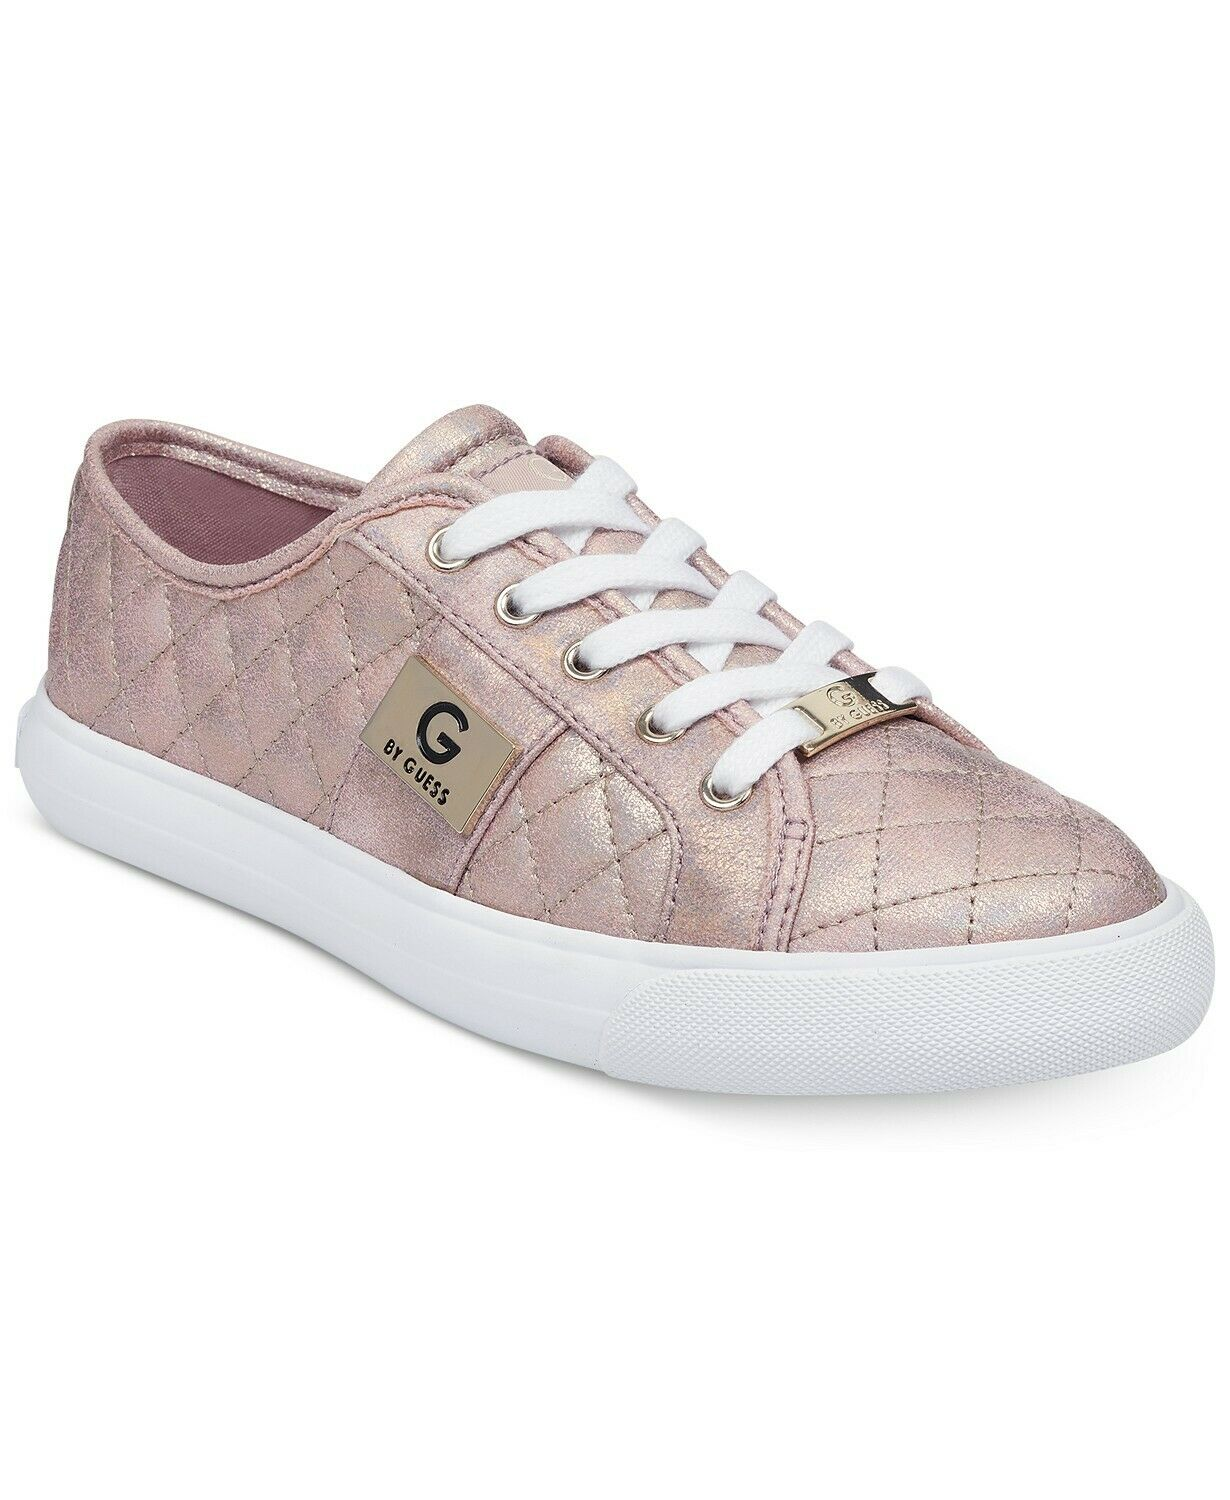 G G G by Guess Women's Backer2 Lace Up Leather Quilted Pattern Sneakers shoes Pink f10a1e